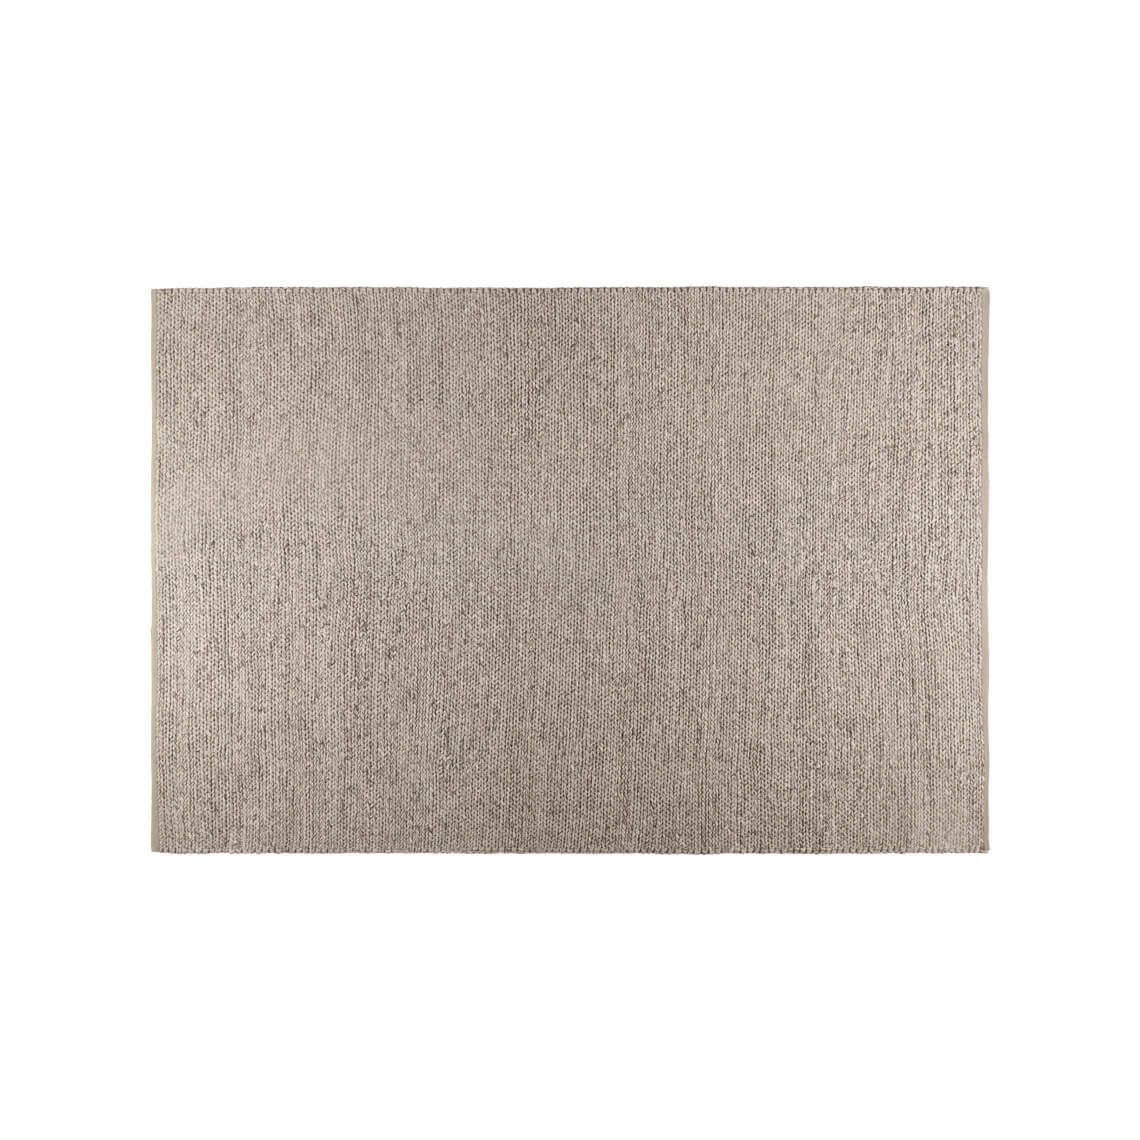 WDT_9_wk36_up to 30% off rugs.jpg